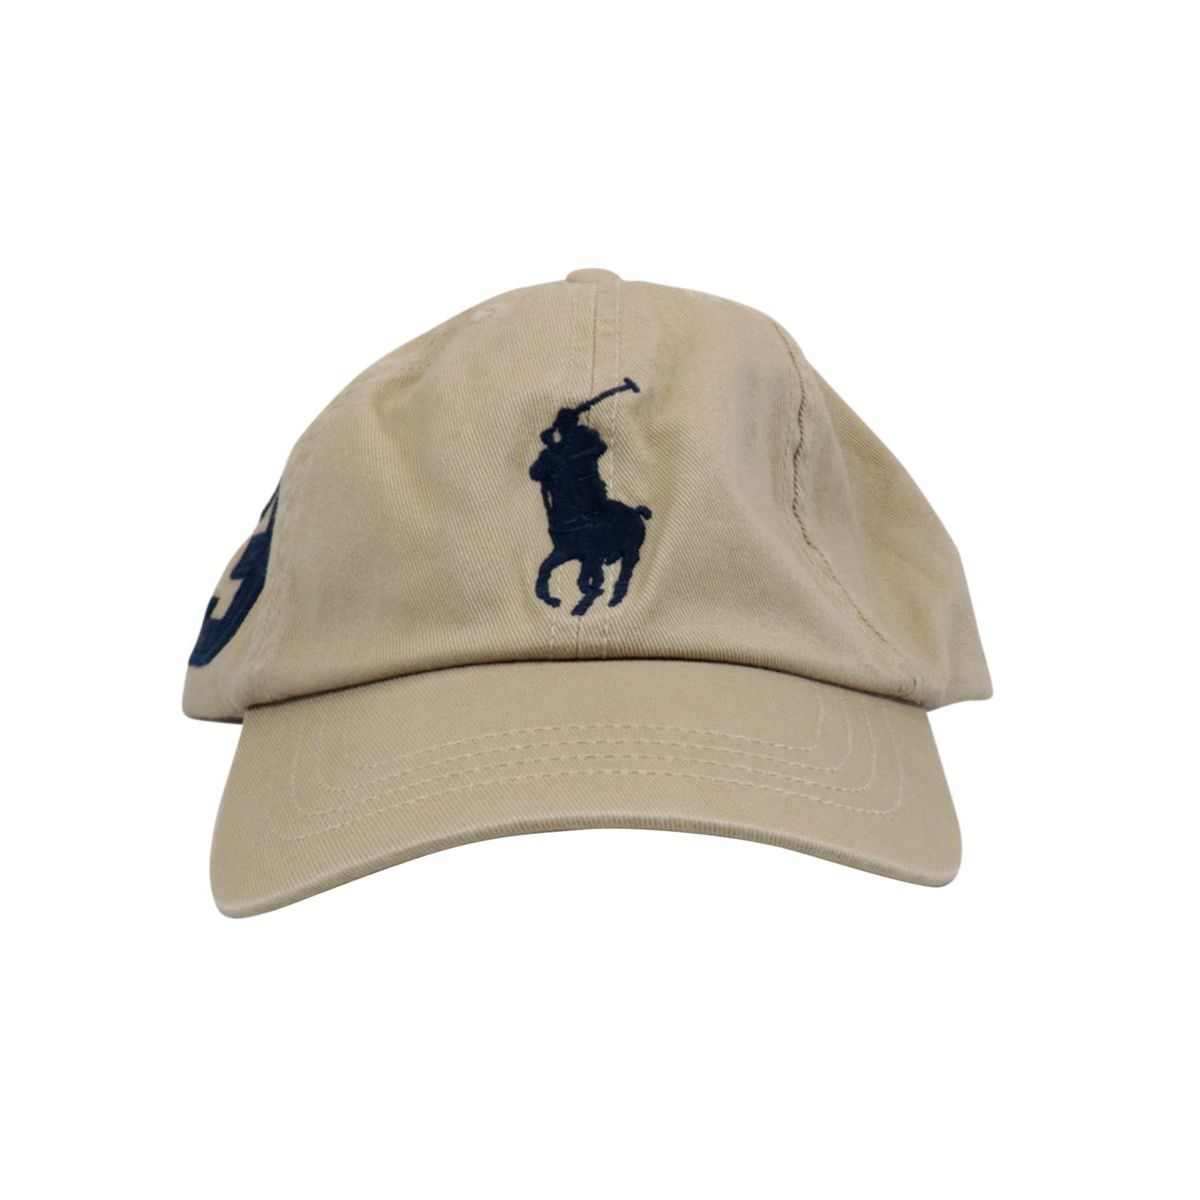 Cotton hat with embroidered logo Kaki Polo Ralph Lauren